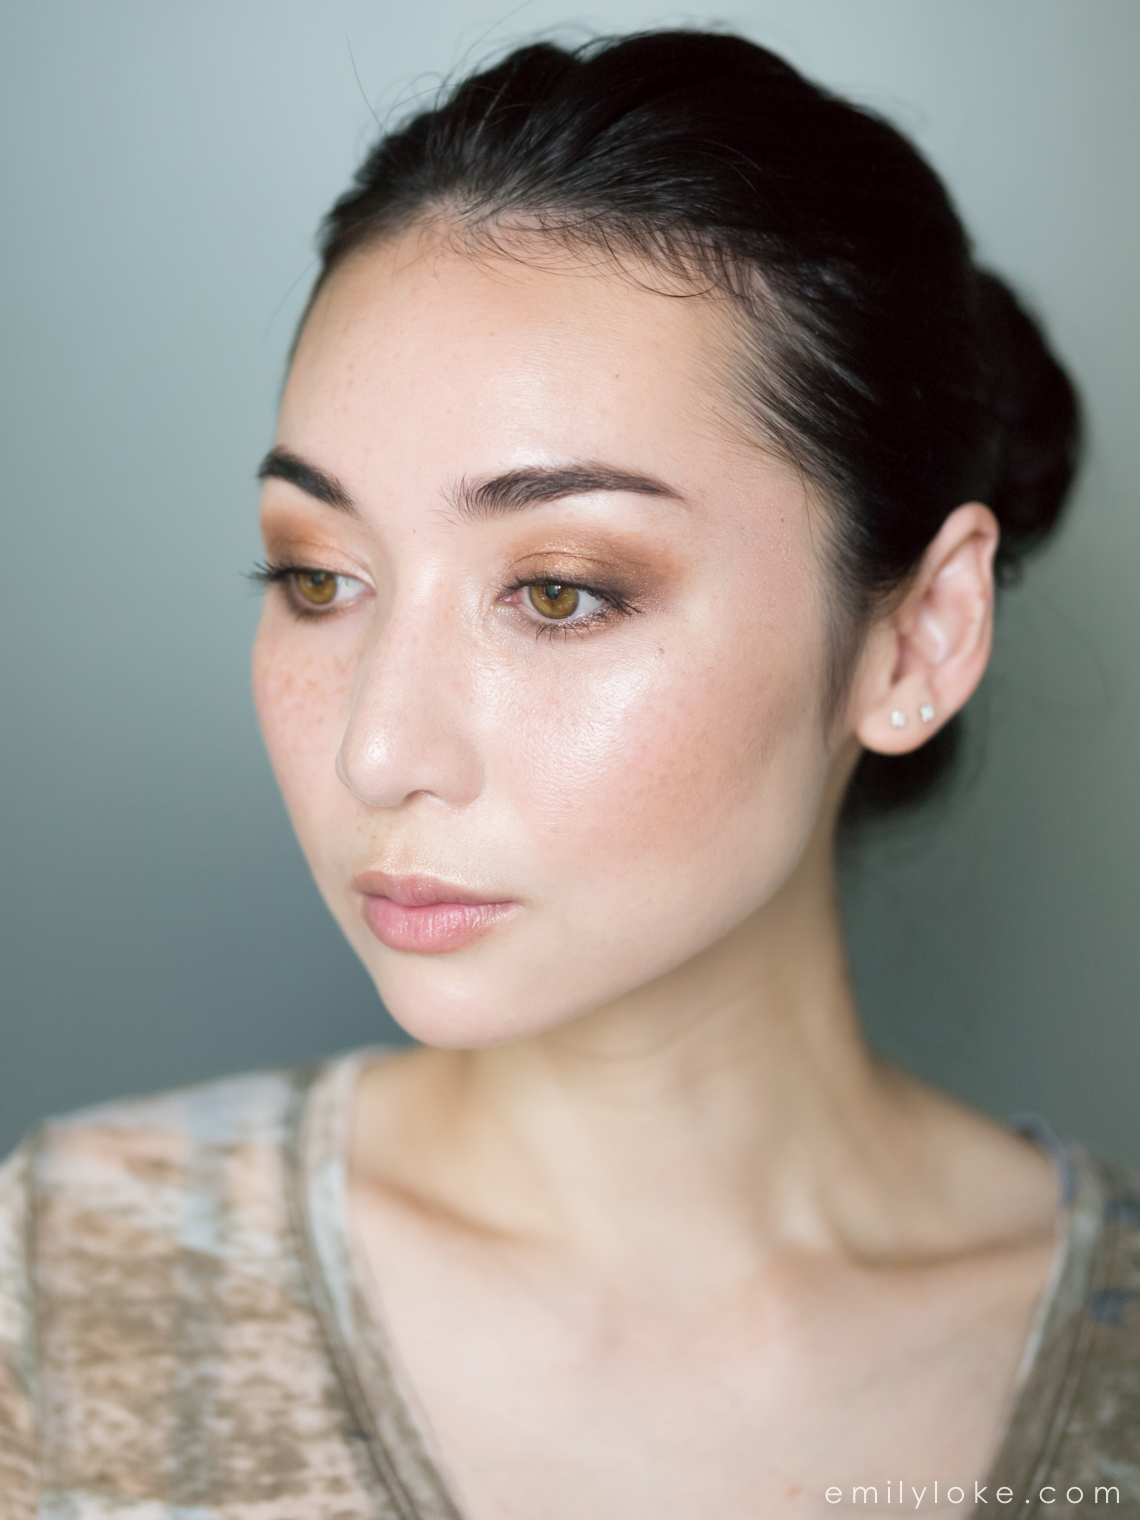 maybelline_colortattoo_drugstore_highlighter4